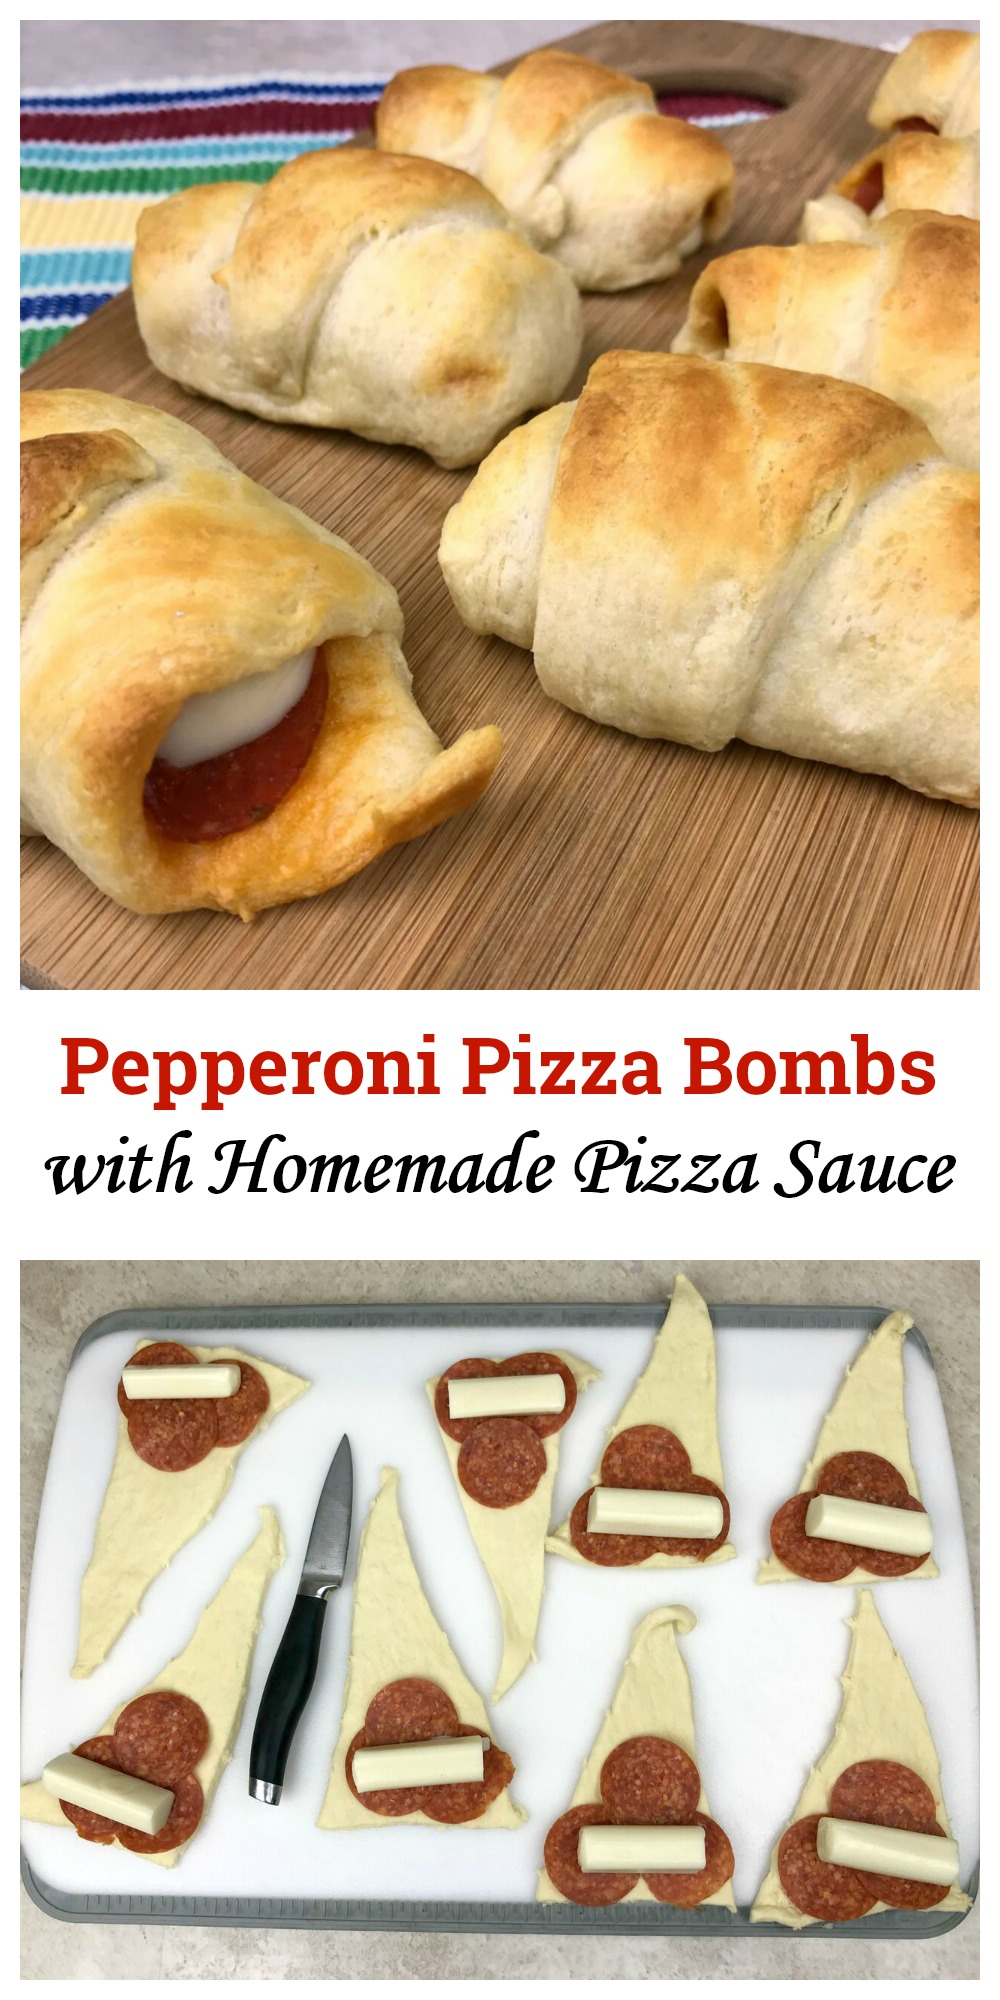 These pepperoni pizza bombs with homemade pizza sauce are a quick and easy snack that you can whip up in minutes. This fun recipe is sure to be a big hit with your family!